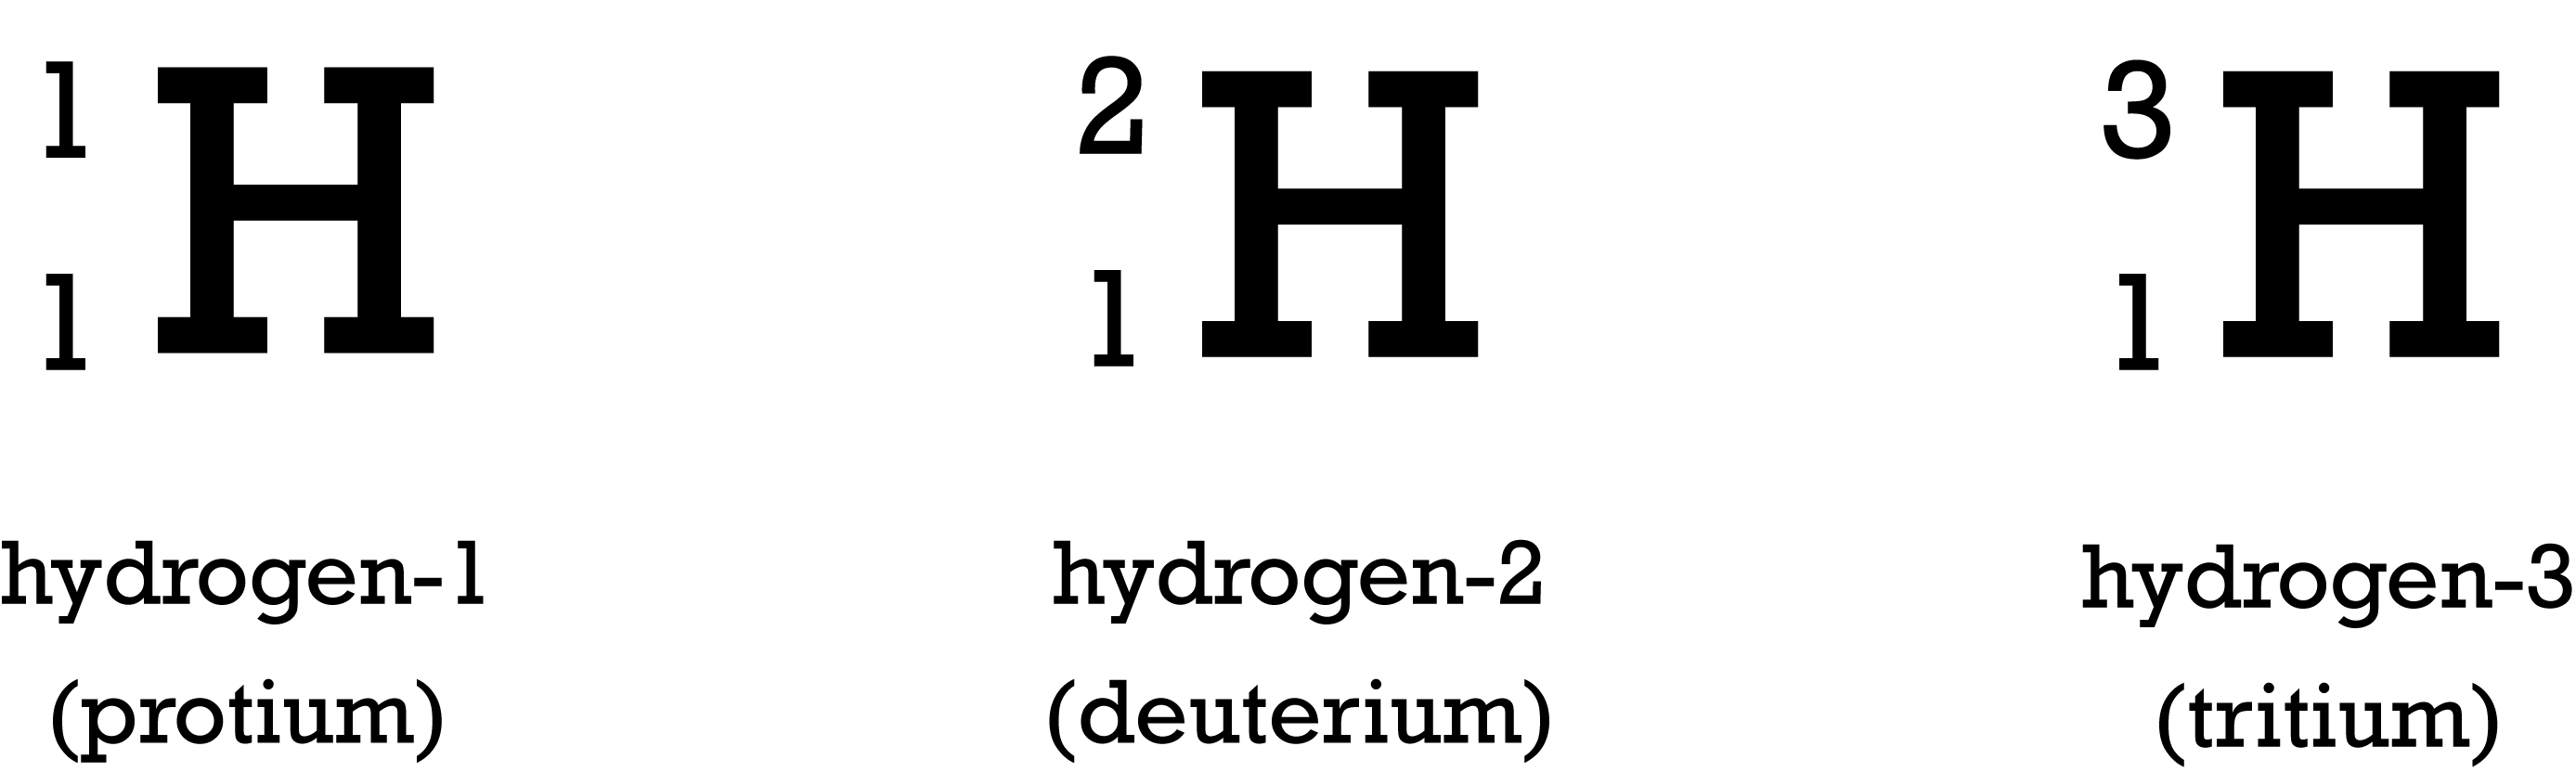 Hydrogen on fakebook create a fake facebook profile wall using on the left youll find my standard atomic notation in the middle and on the right youll find my buddies hydrogen 2 and hydrogen 3 gamestrikefo Images